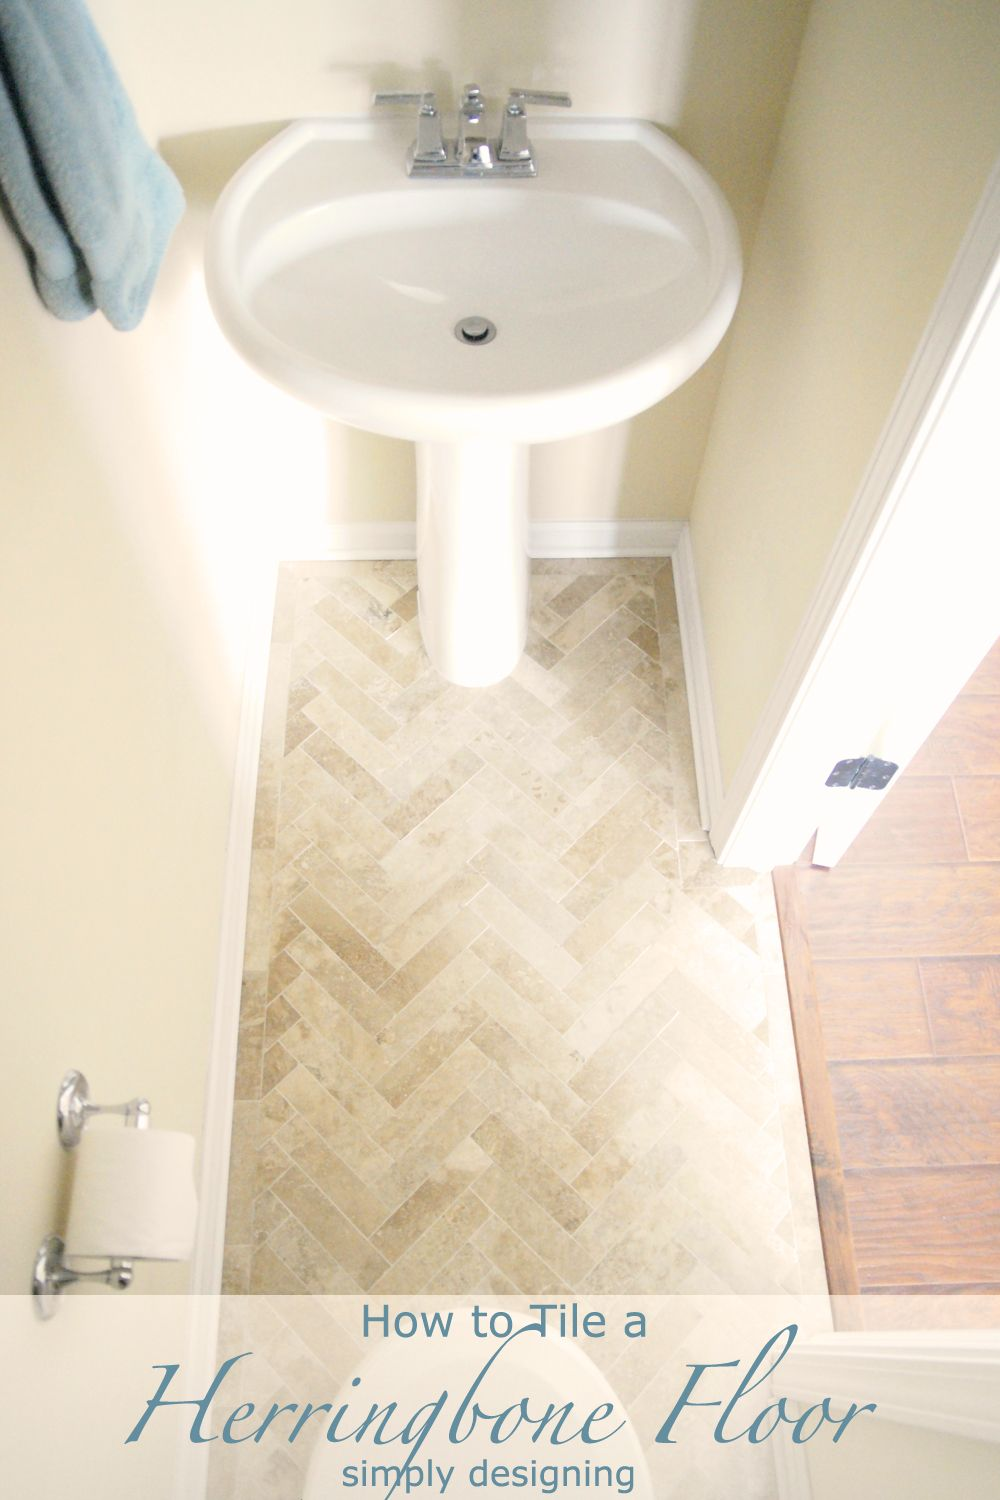 Herringbone Tile Floor - How to Prep, Lay, and Install | Herringbone ...